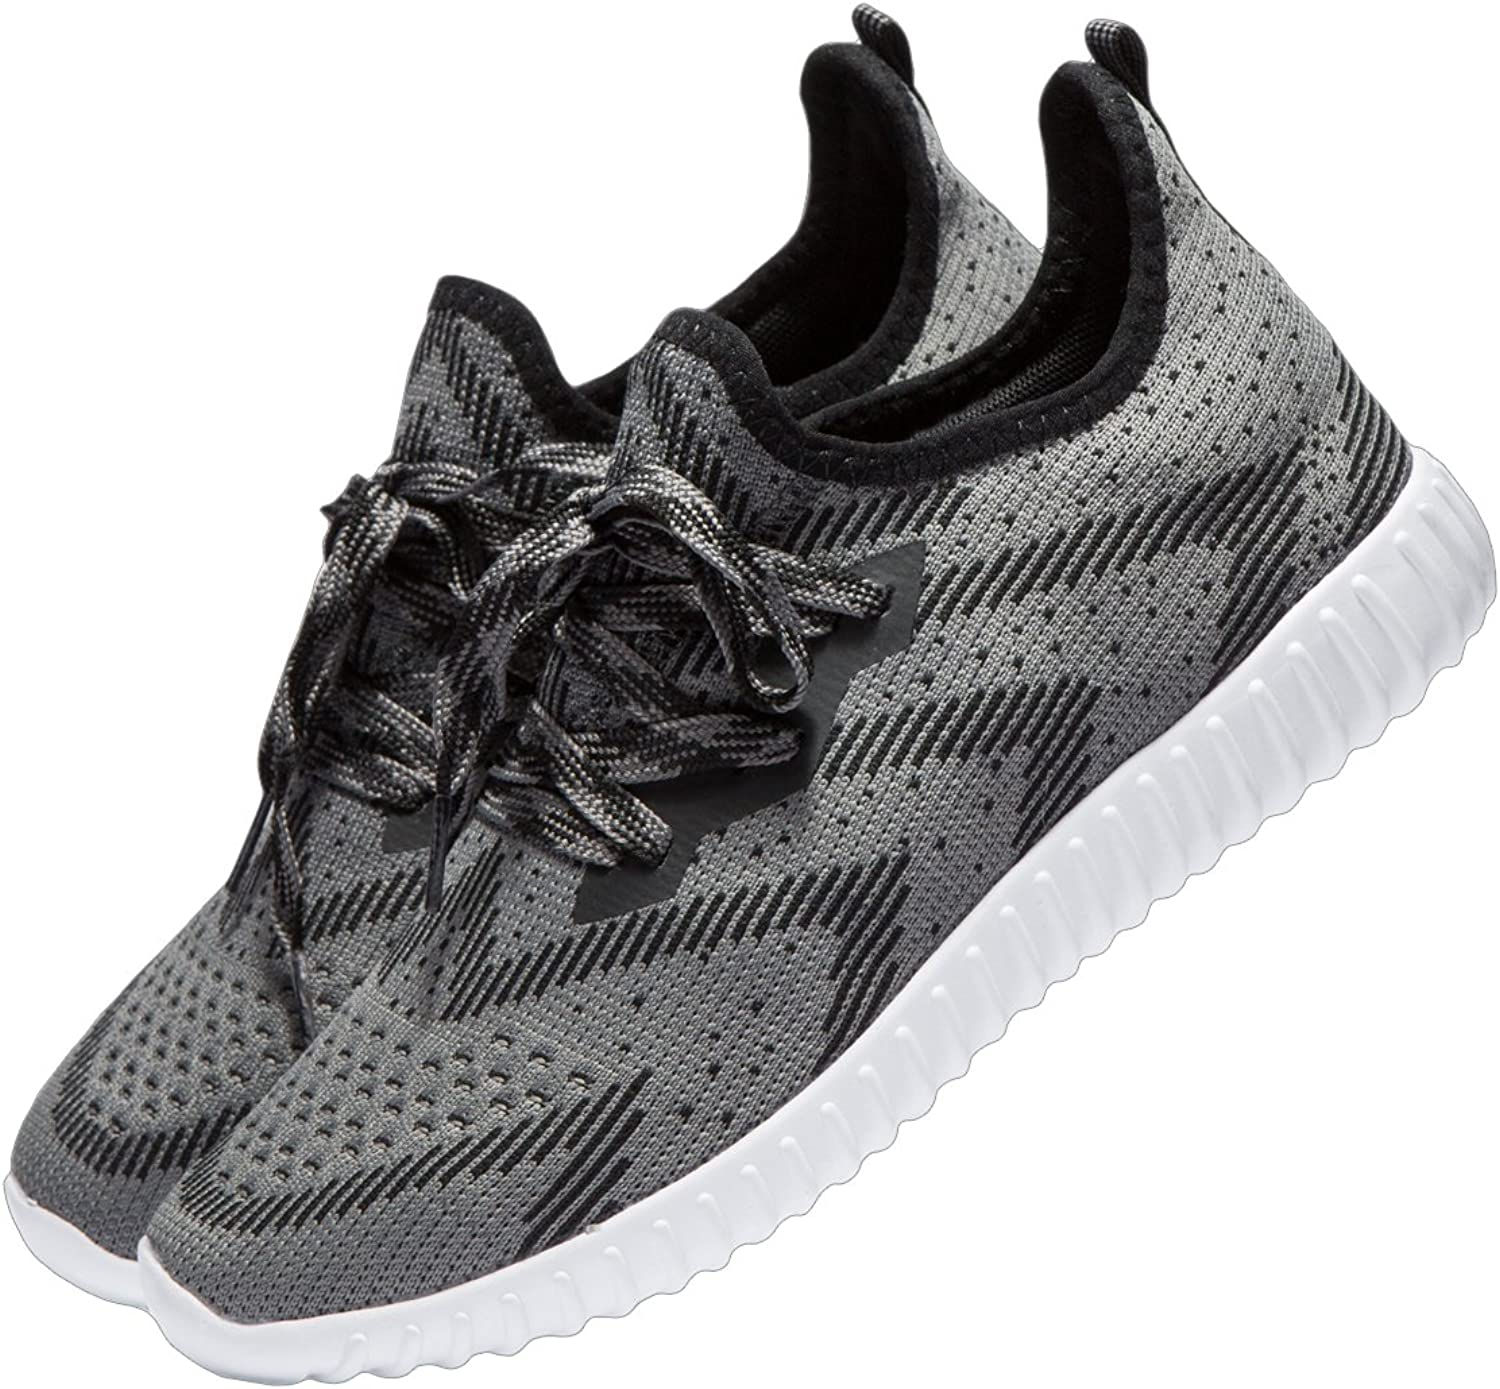 YHOON Men's Knit Sports Running shoes Lace up Athletic shoes